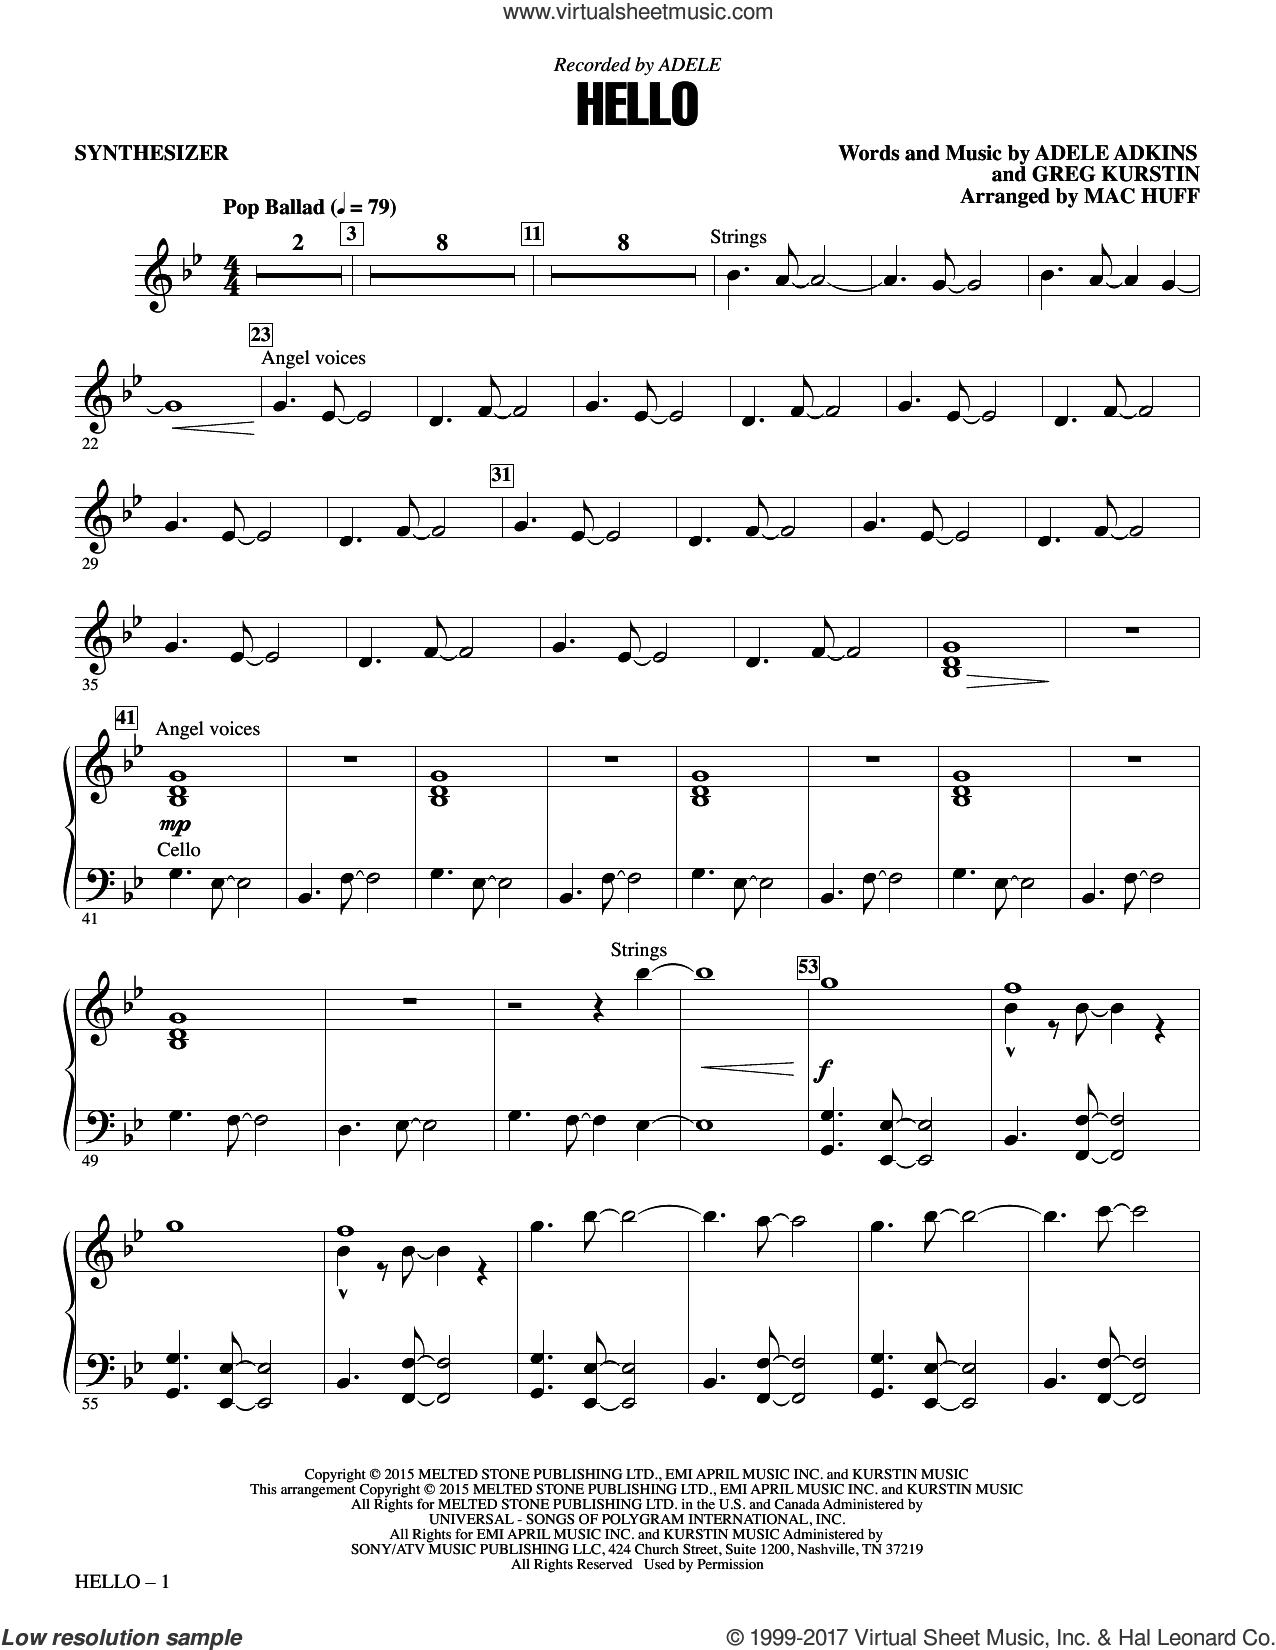 Hello (complete set of parts) sheet music for orchestra/band by Mac Huff, Adele, Adele Adkins and Greg Kurstin, intermediate skill level